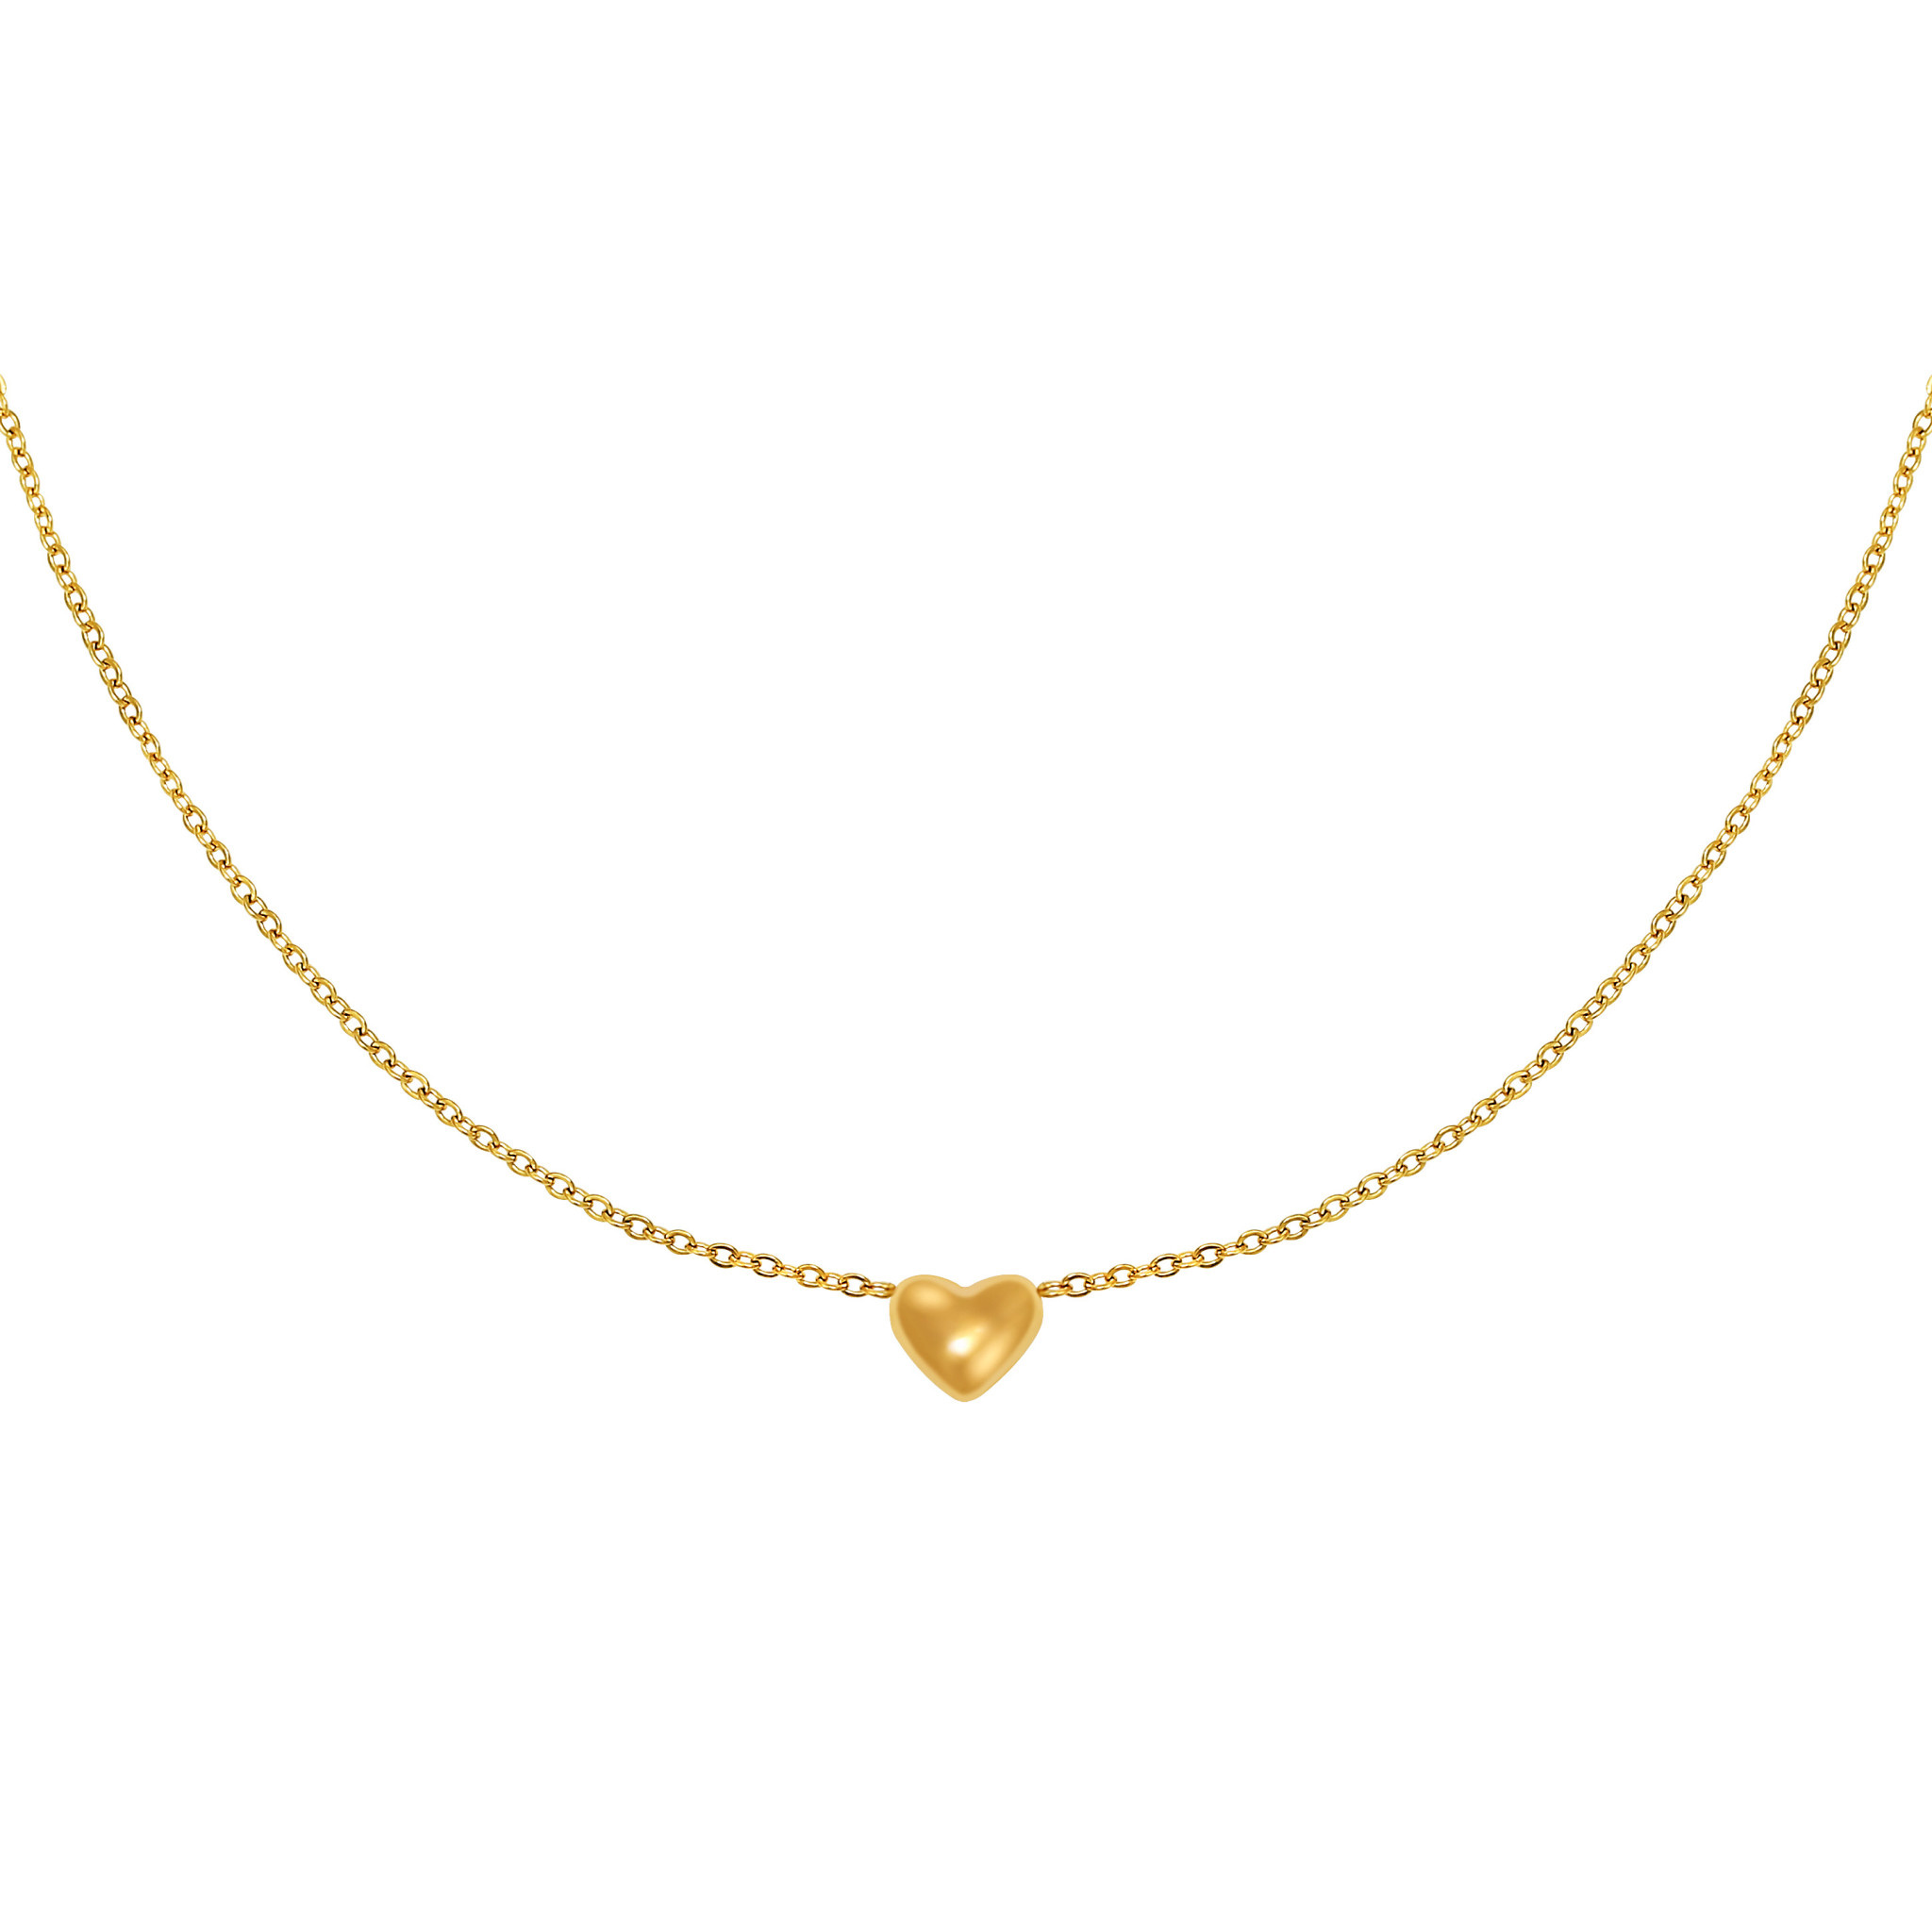 With love Necklace - Always in my heart gold